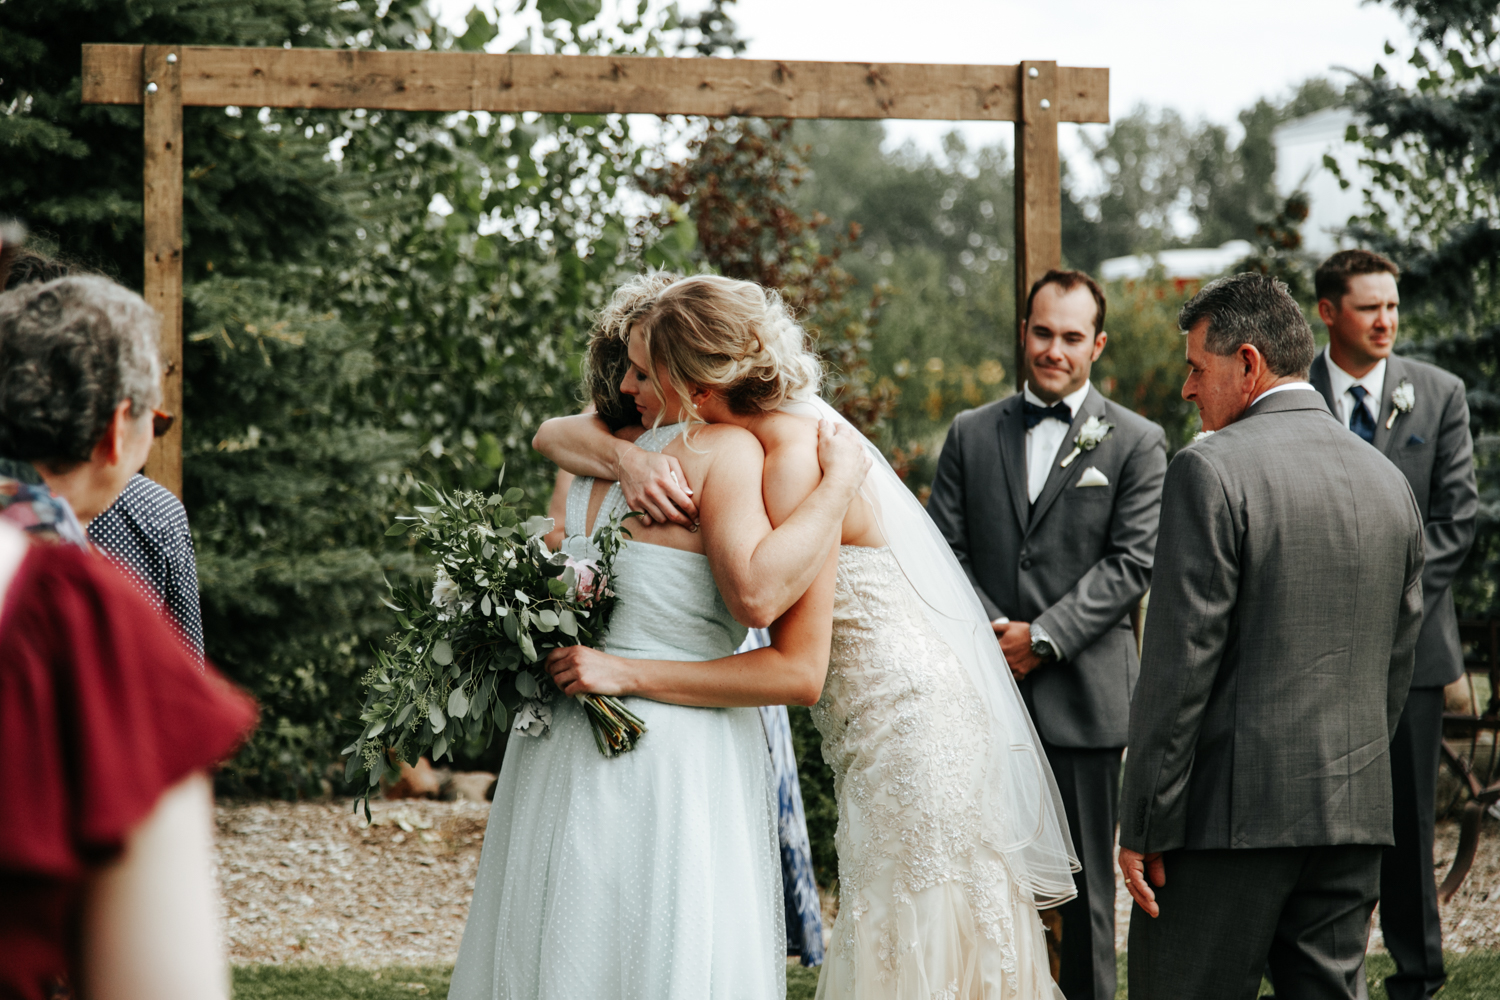 lethbridge-photographer-readymade-community-centre-wedding-coaldale-bailey-joel-picture-image-photo-9.jpg